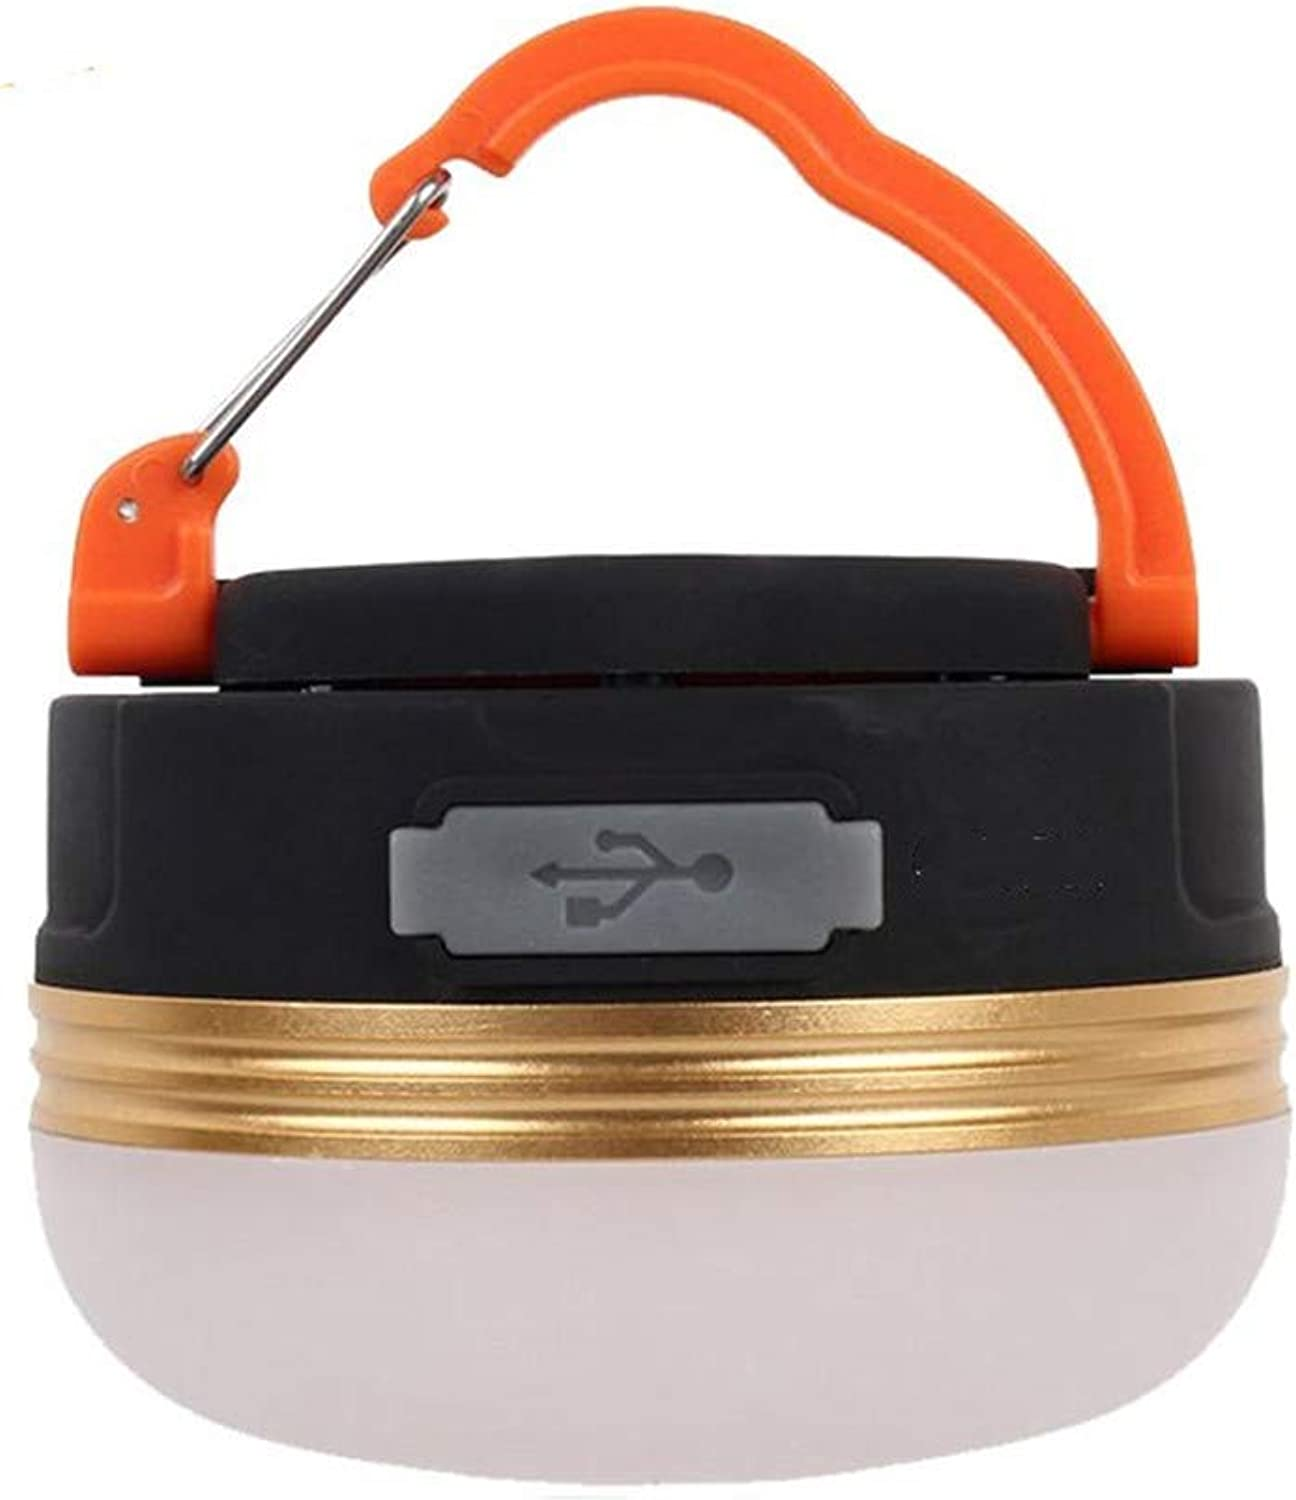 Mini Camping Lights 3W LED Camping Lantern Tents Lamp Outdoor Hiking Night Hanging Lamp USB Rechargeable